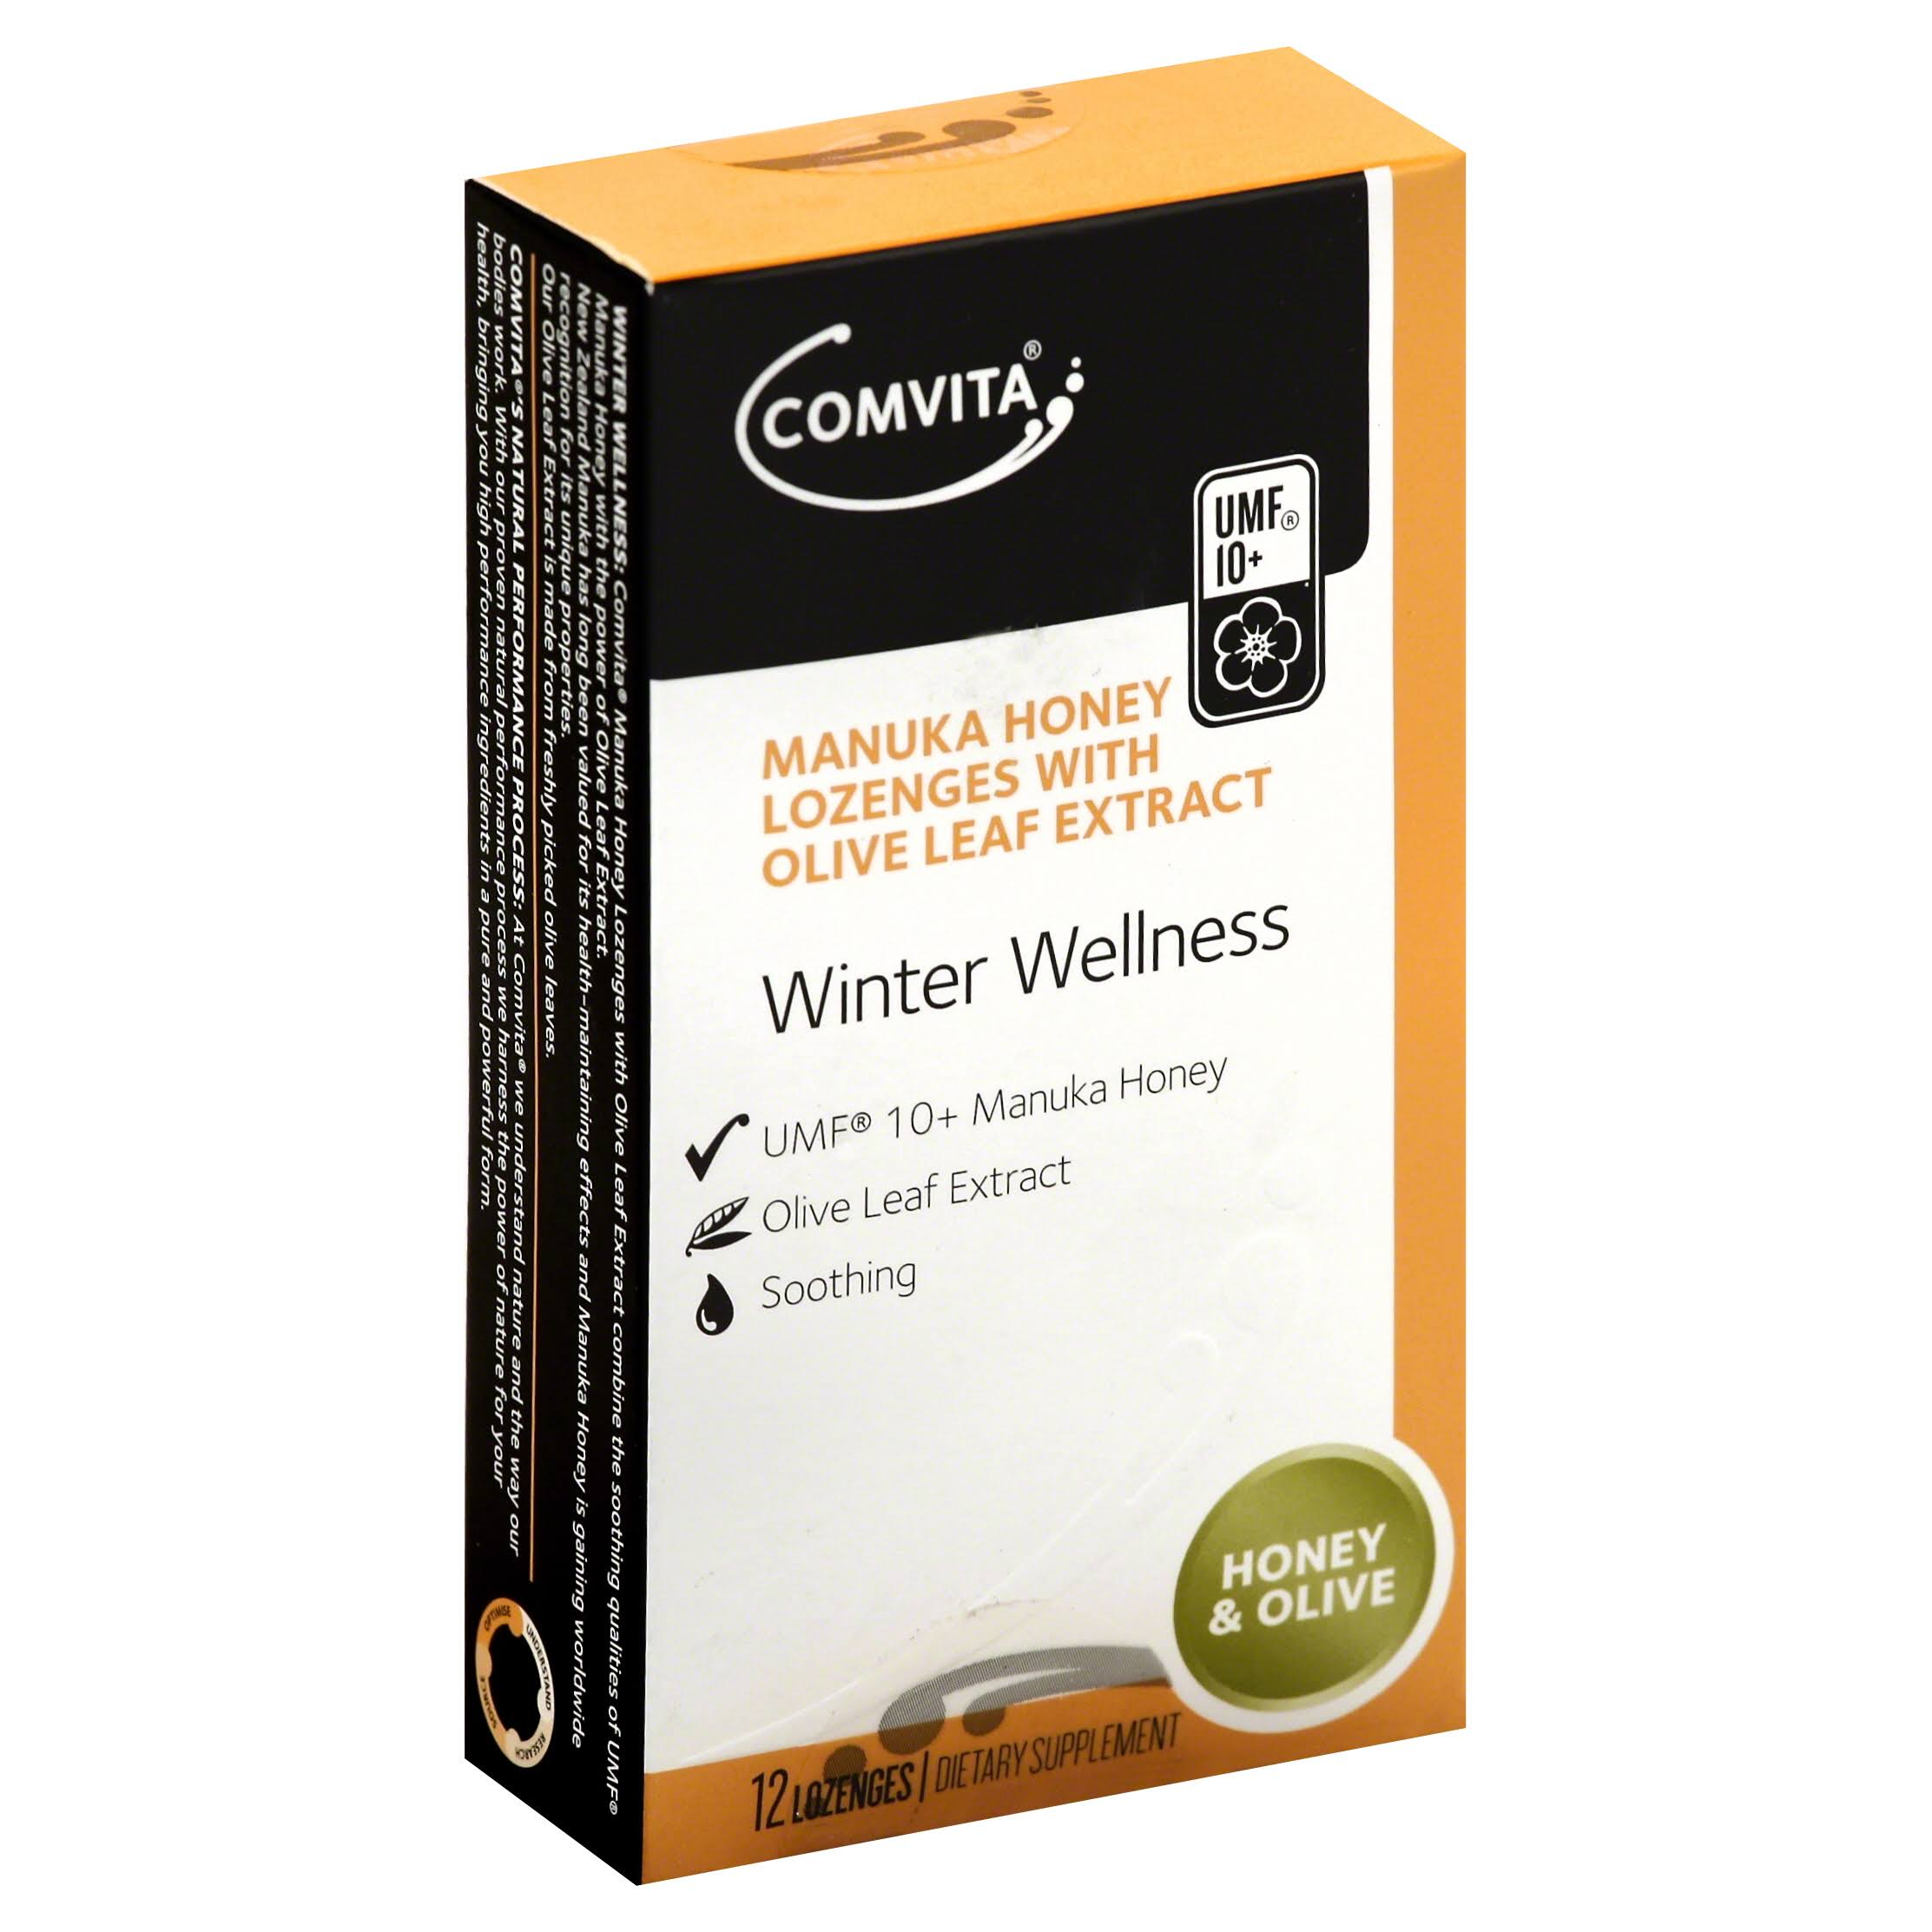 Comvita Manuka Honey Lozenges with Olive Leaf Extract - Honey & Olive, x12